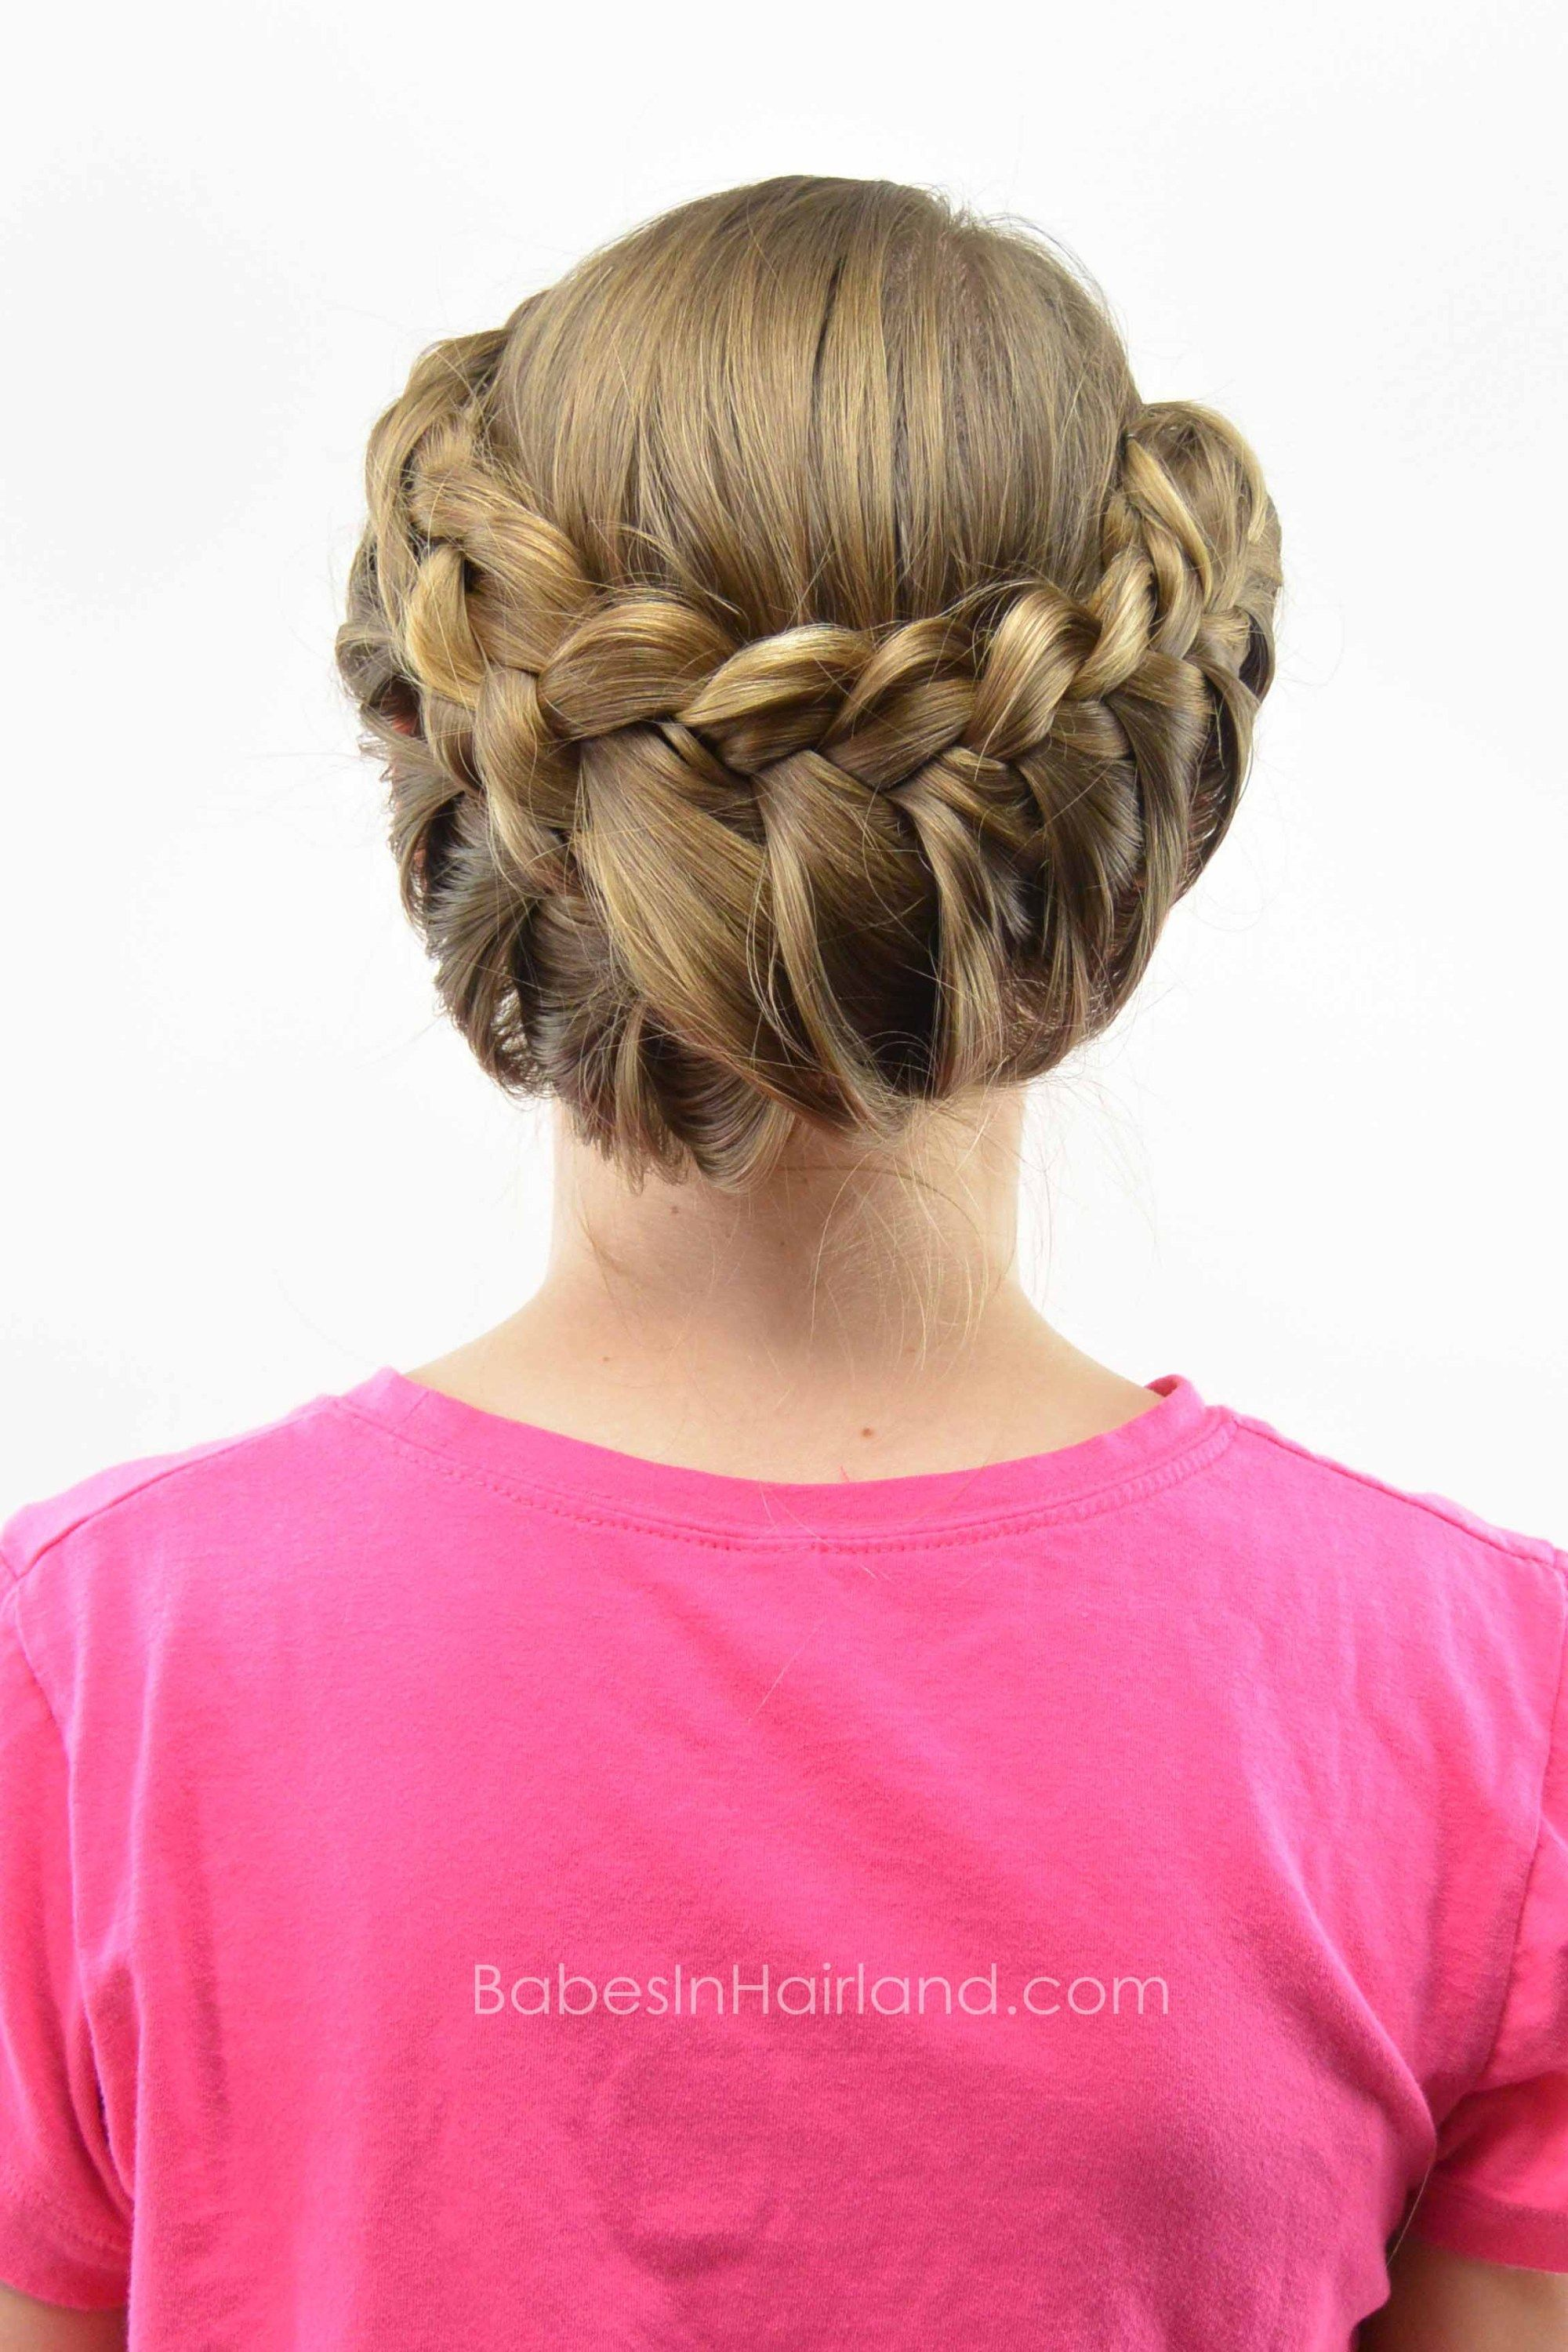 Lace Braid Updo | Trenza | Pinterest | Lace braid, Updo and Hair style